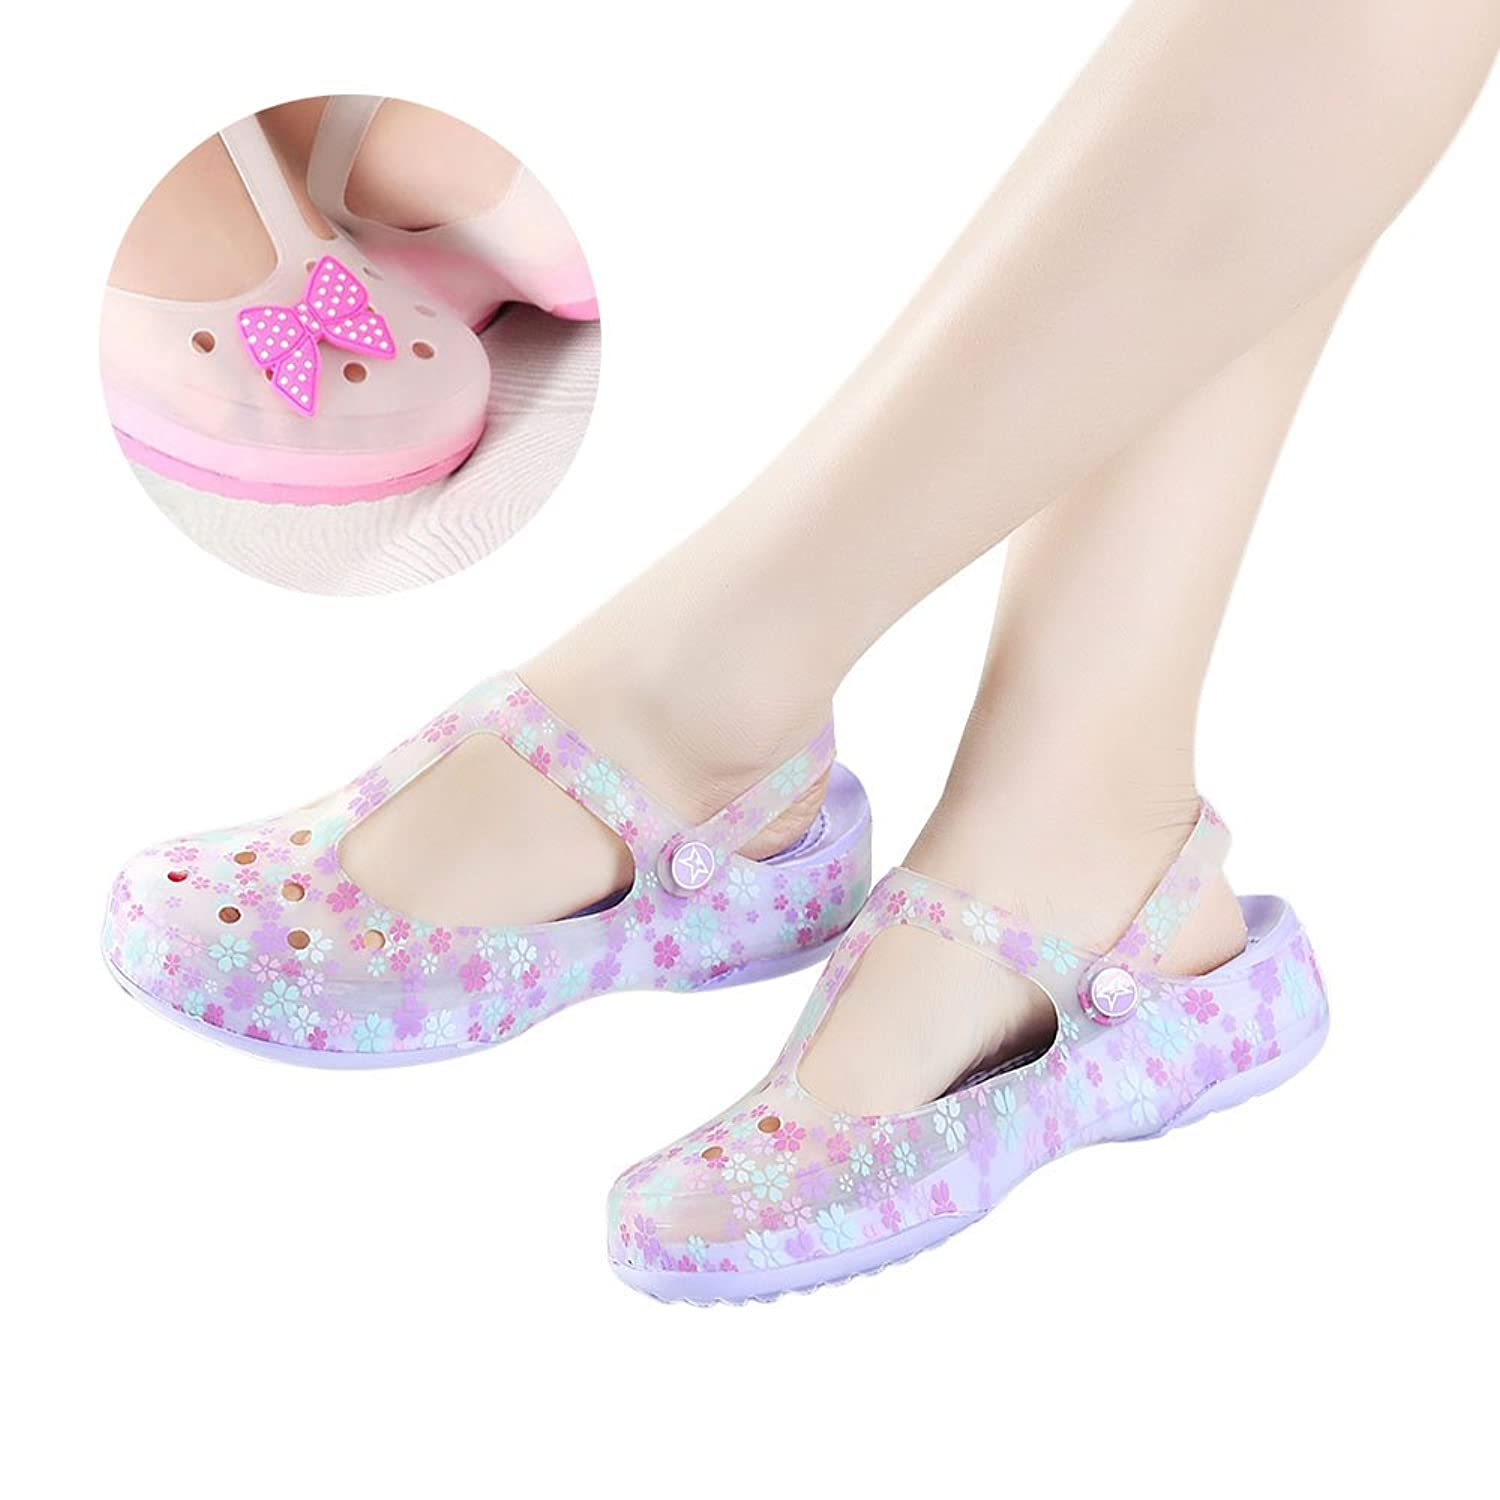 Womens Flower Printed Style EVA Garden Clog Shoes Sandals Beach Clogs With Backstrap + Decoration Gift Random